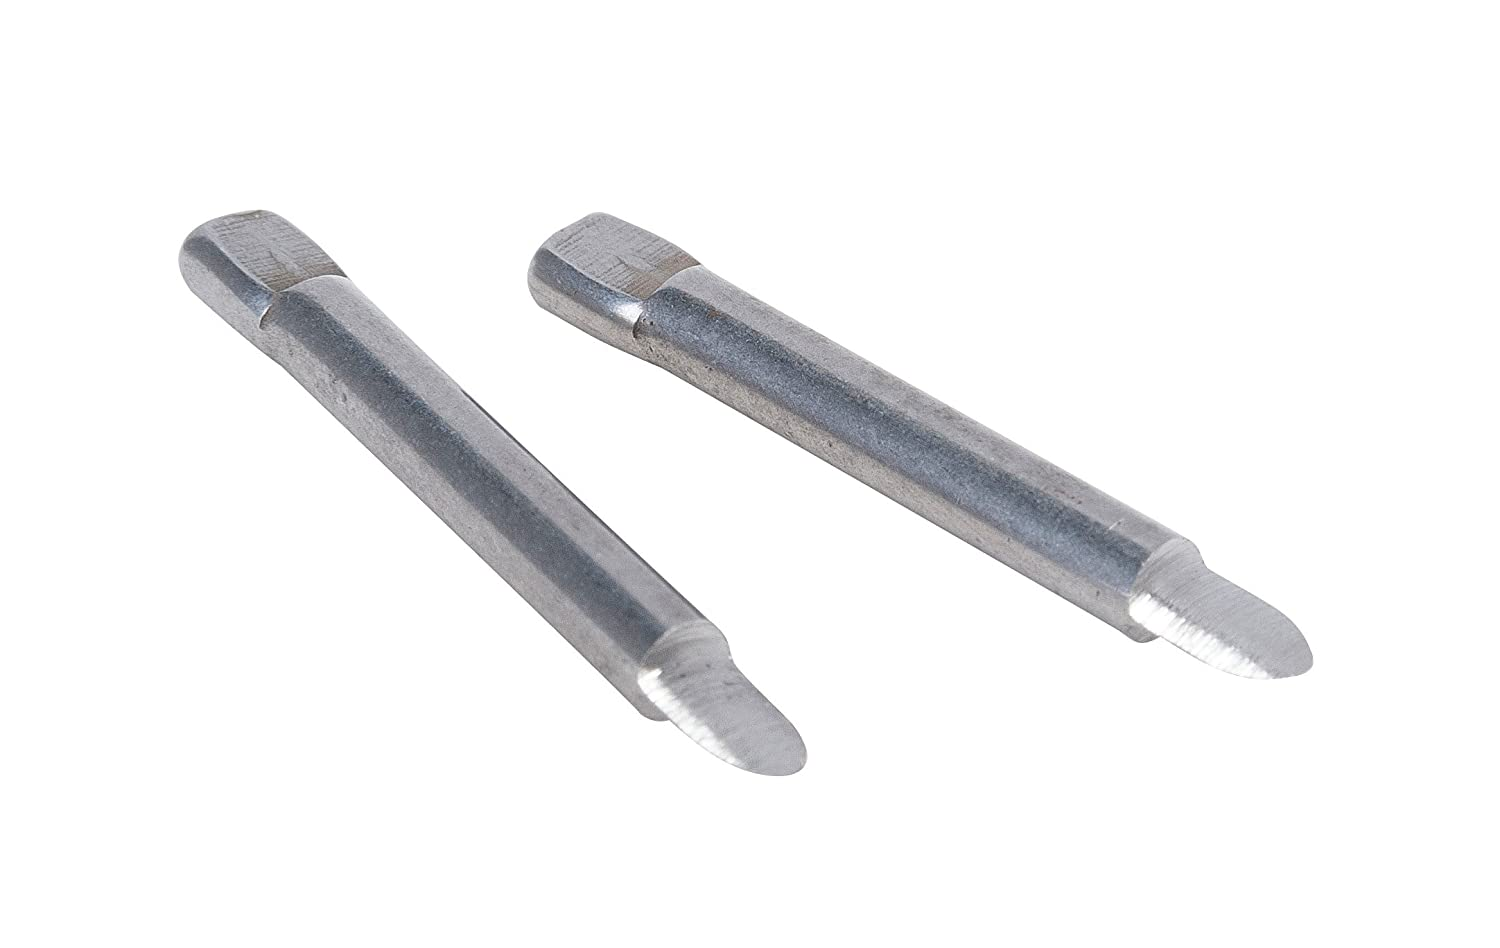 1-Pack Greenlee Textron Greenlee 13544 Replacement Blades for Cable Stripping Tool 1903